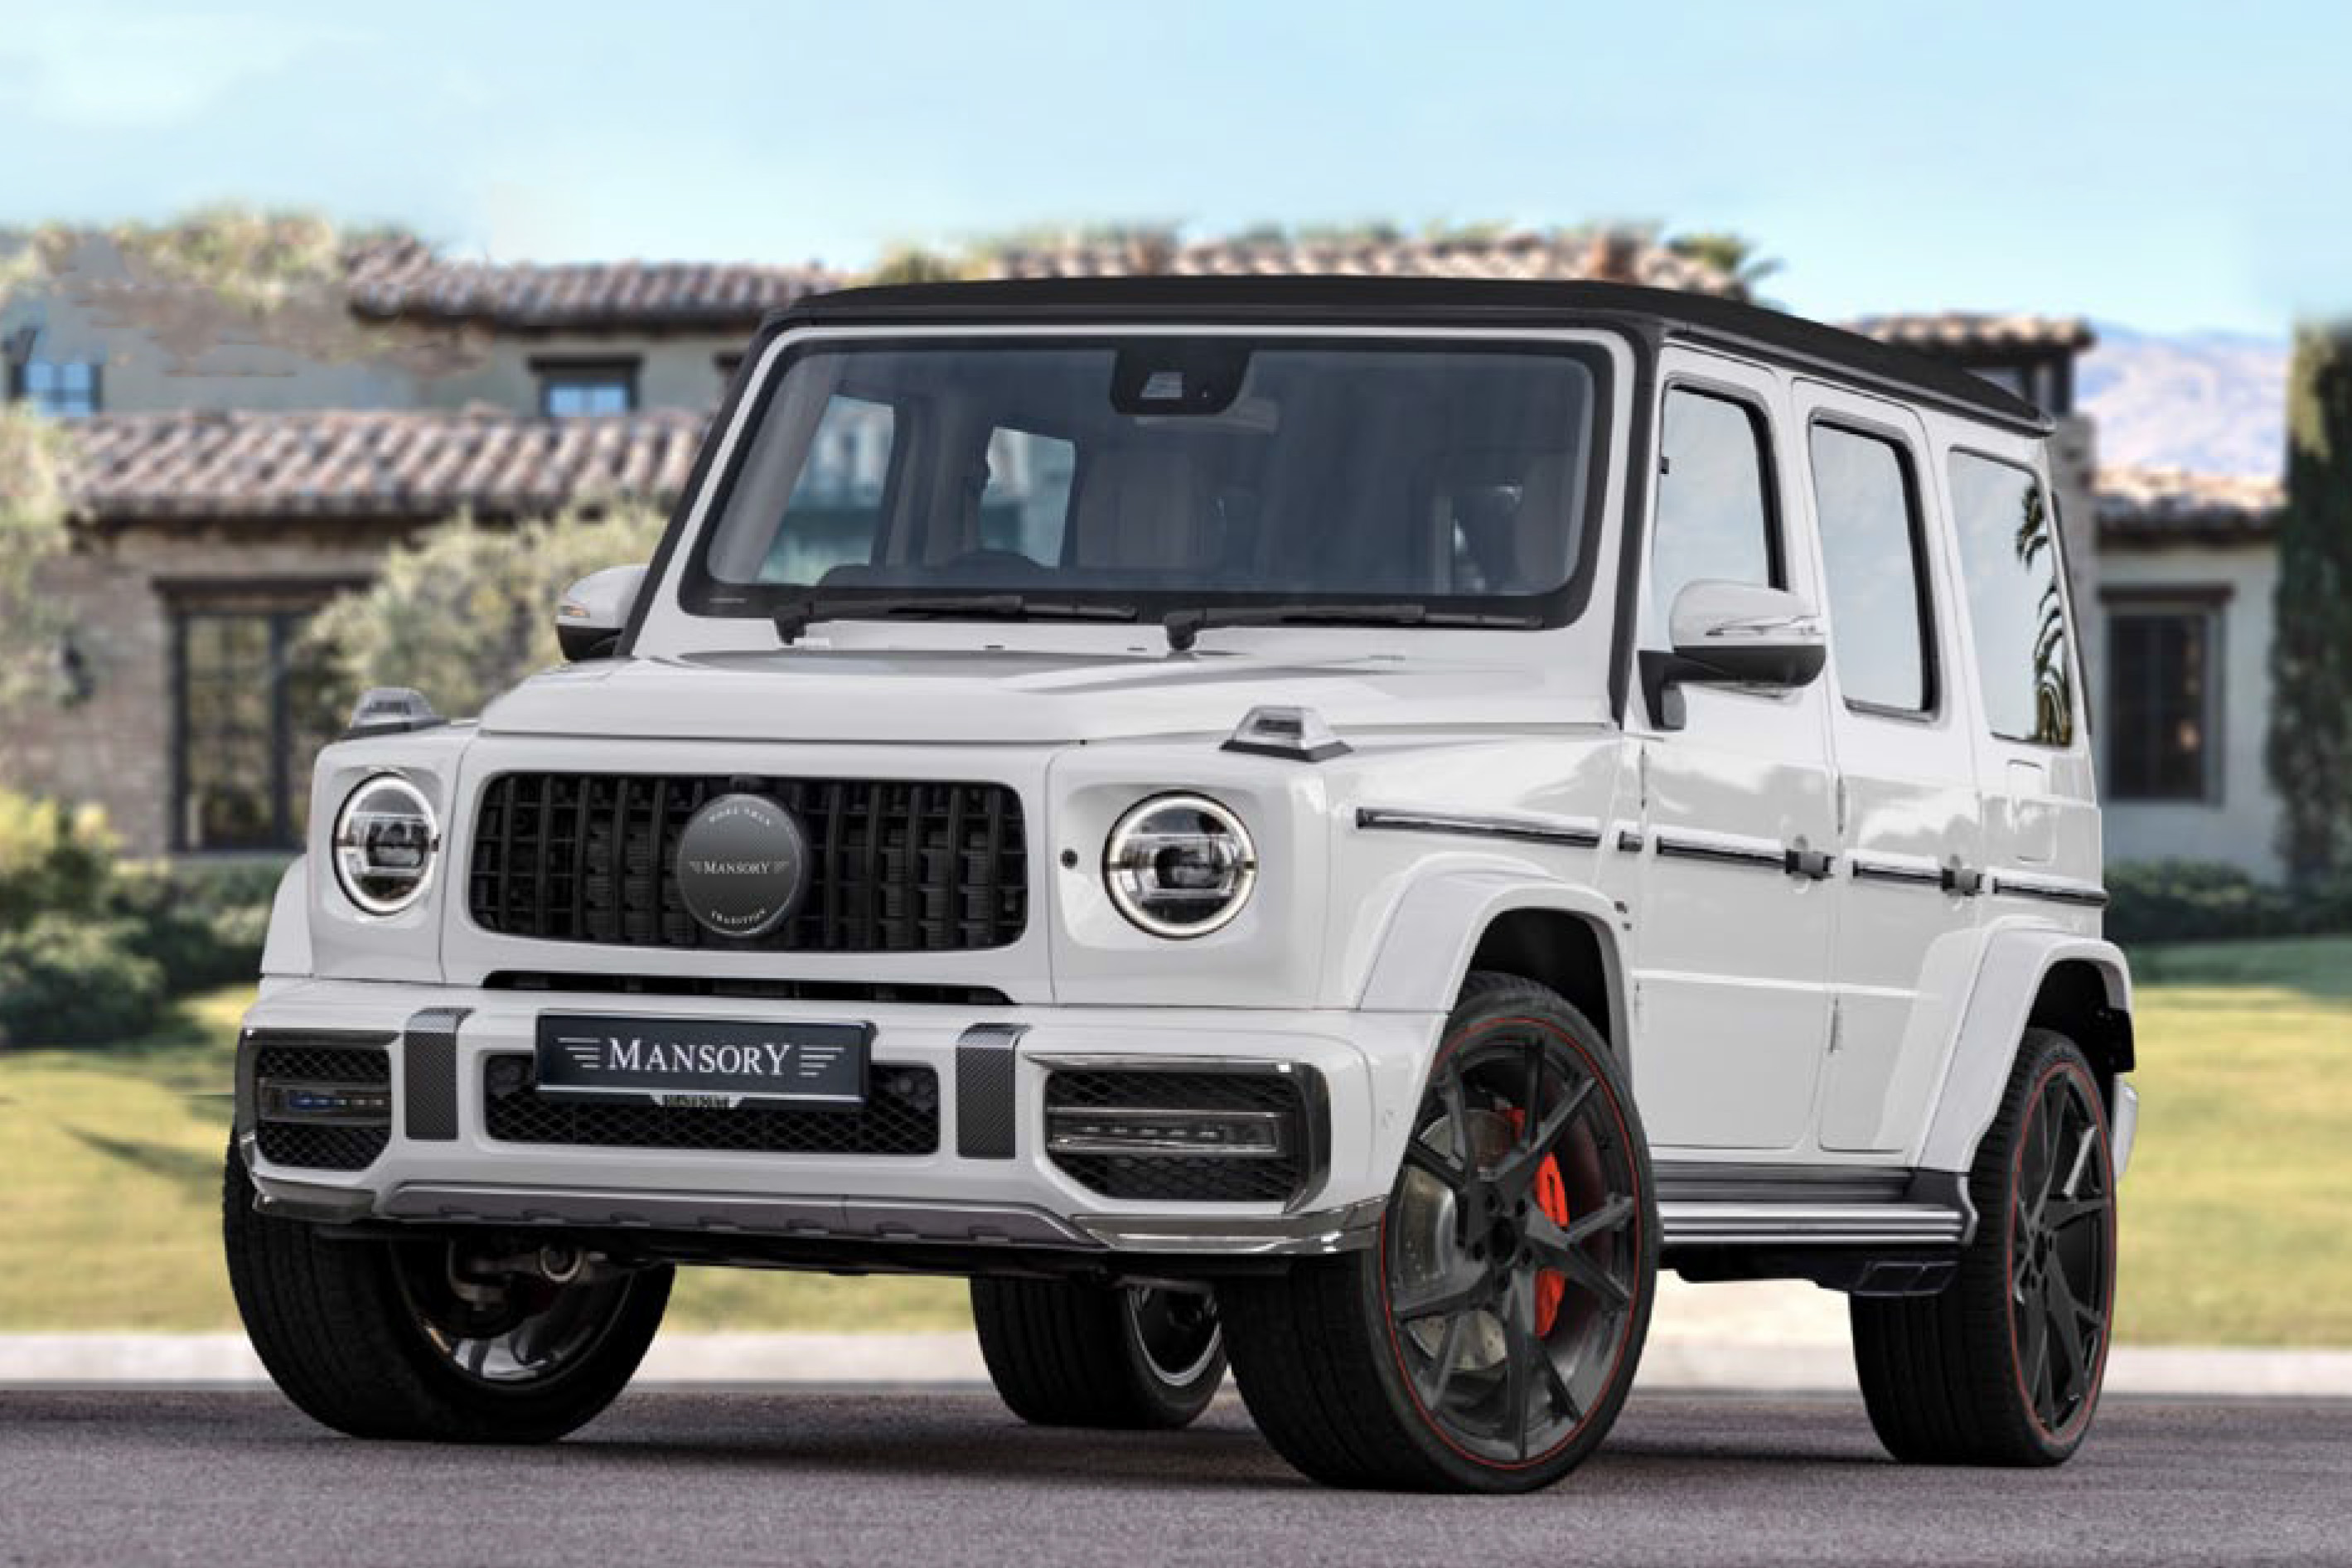 mansory mercedes g wagon w463a body kit yn.5 wheel rim 2019 2020 2021